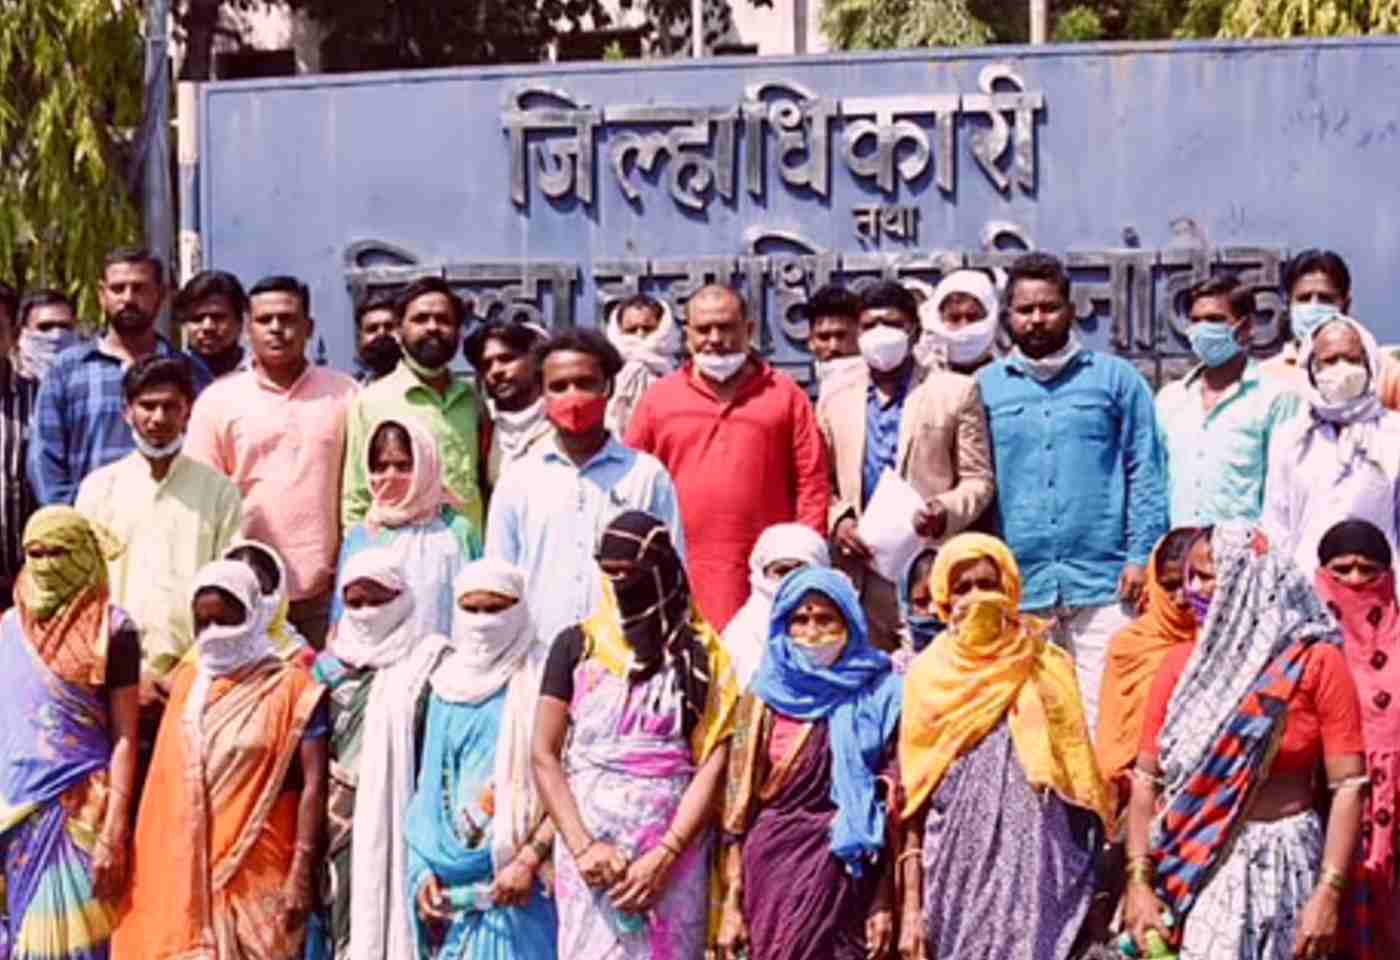 Shocking: Village in Nanded Social Boycott on Dalit community, cloesed groceries and medicines For Week